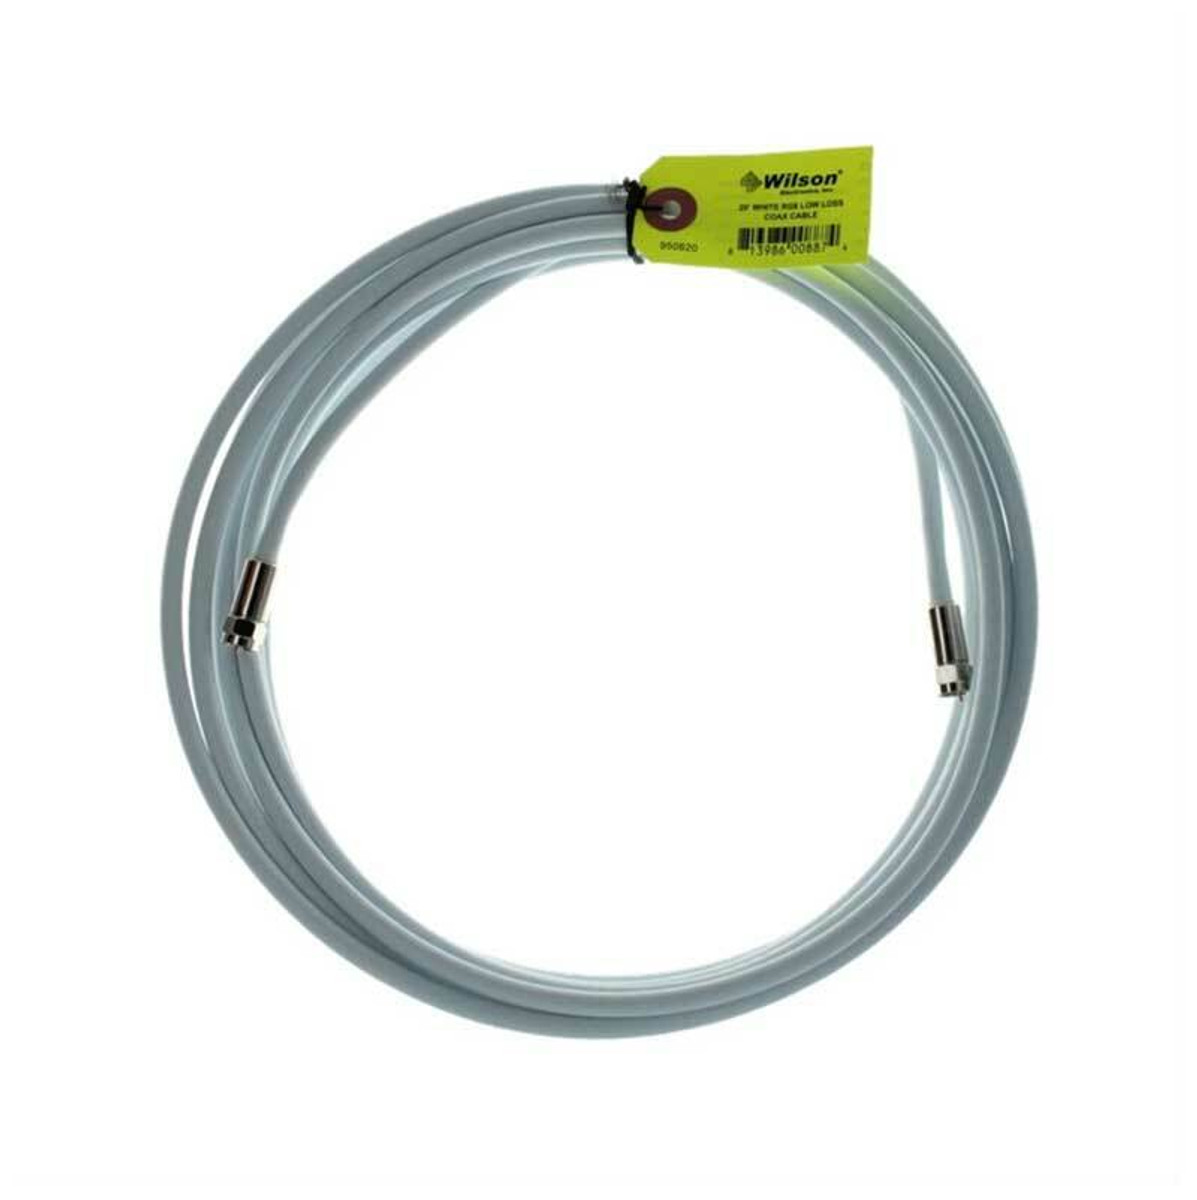 weBoost (Wilson) 950620 RG6 F-Male to F-Male | 20 ft White Cable